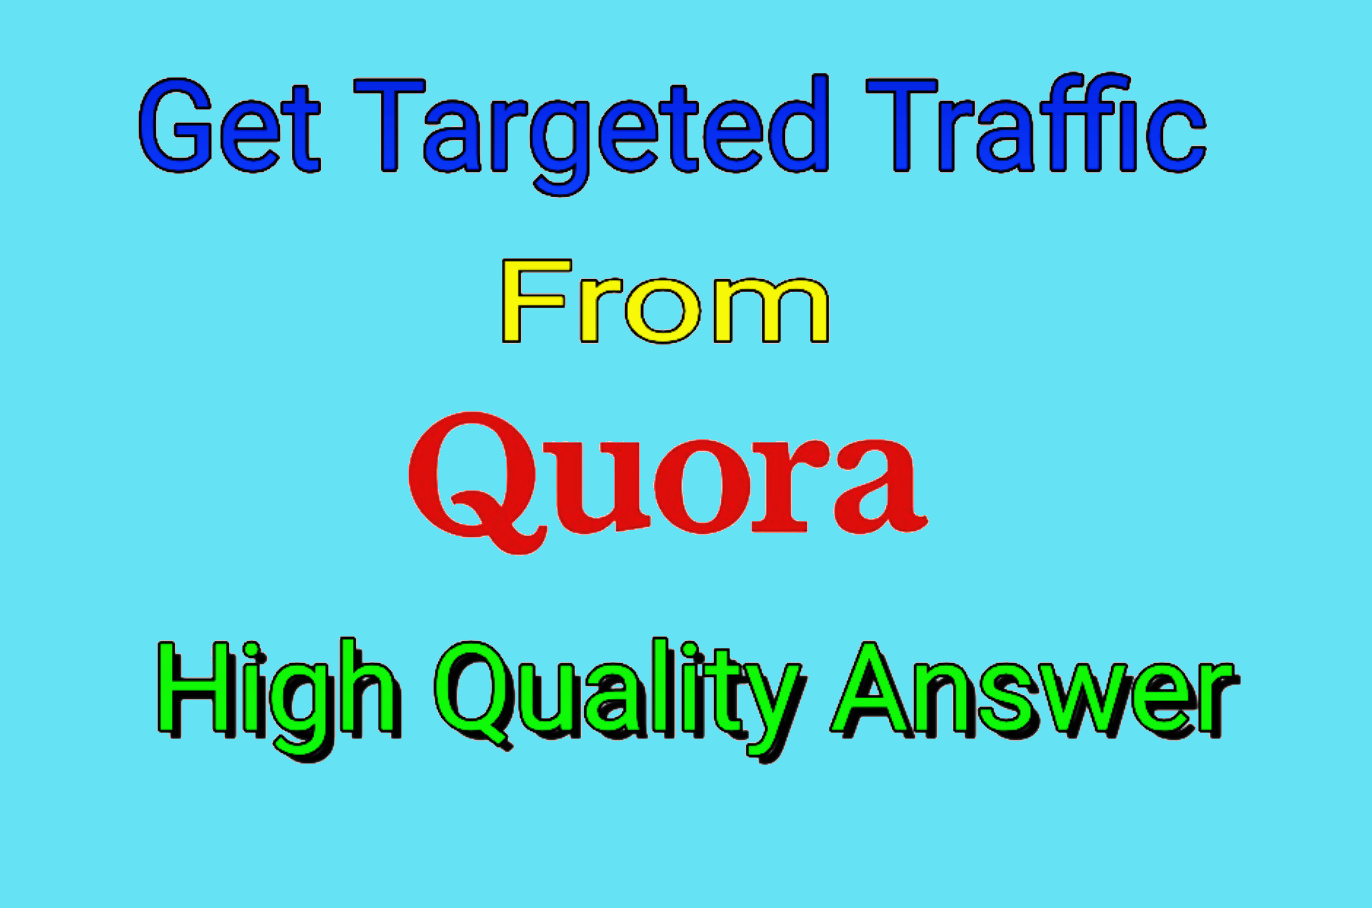 Get Targeted Traffic or Promote Product From 20 Quora High Quality Answers